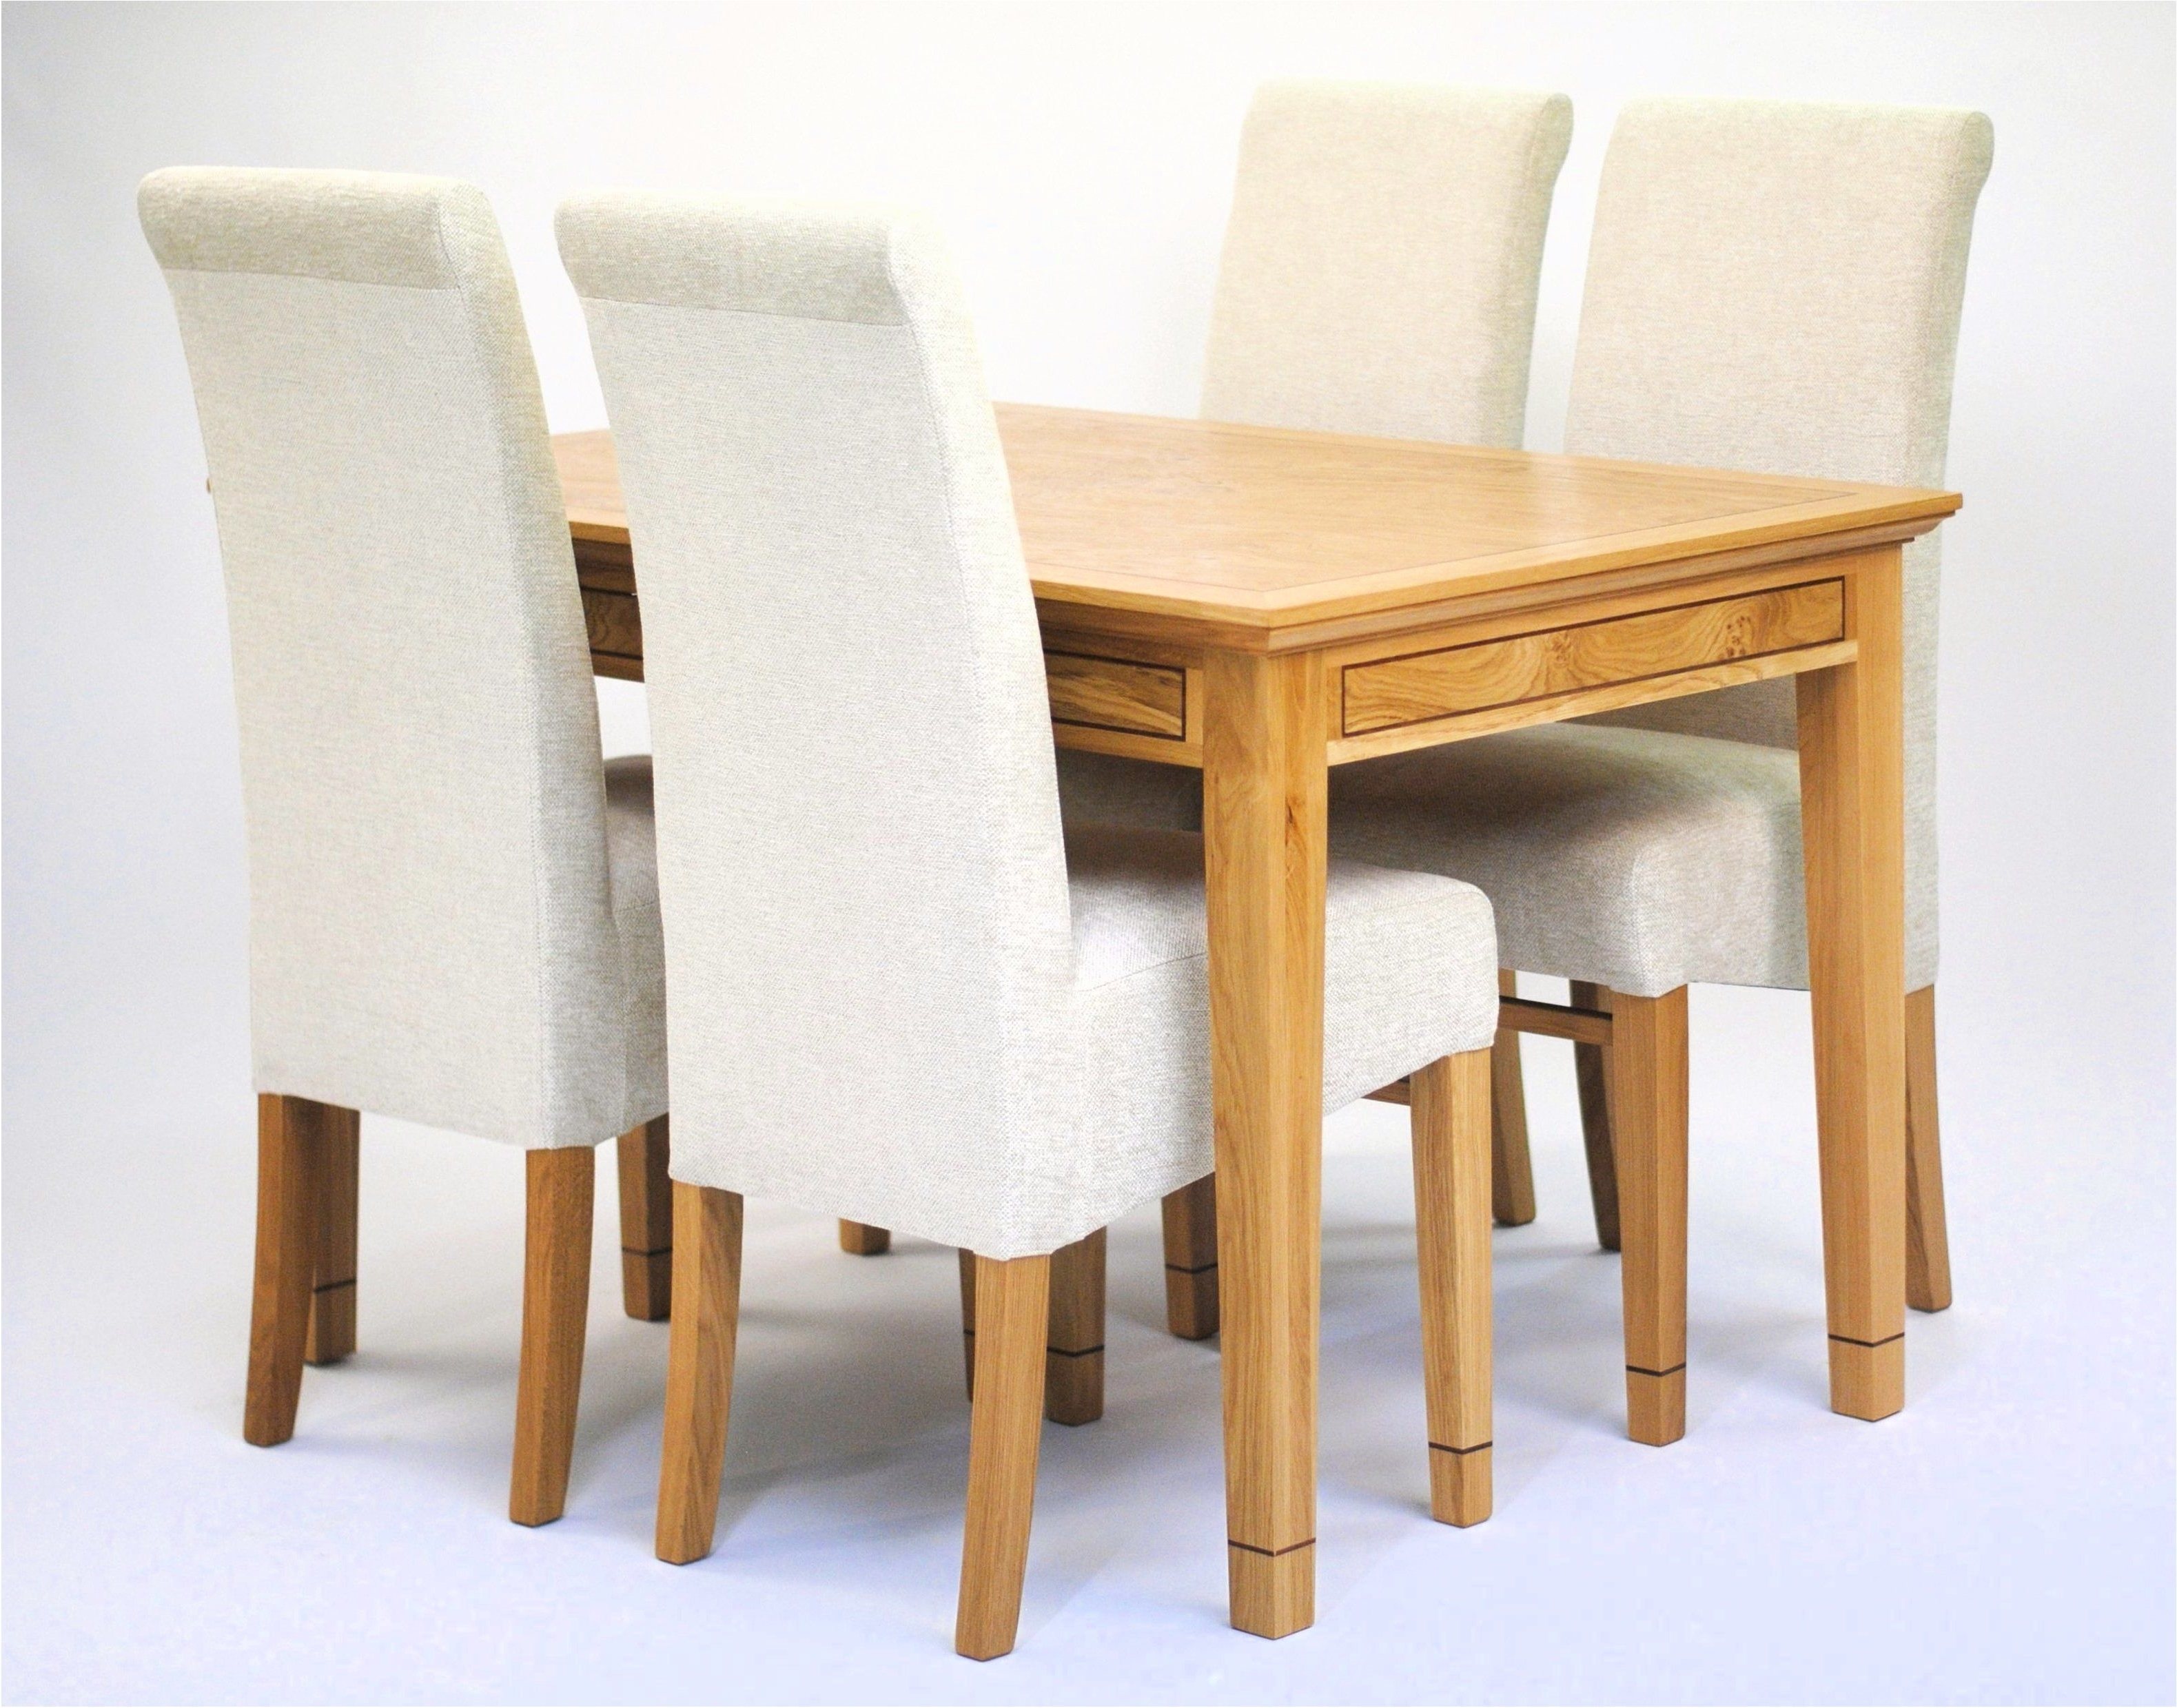 Magnificent Oak Dining Table 4 Chairs Tanner Furniture Designs Regarding Widely Used Small Oak Dining Tables (View 13 of 25)